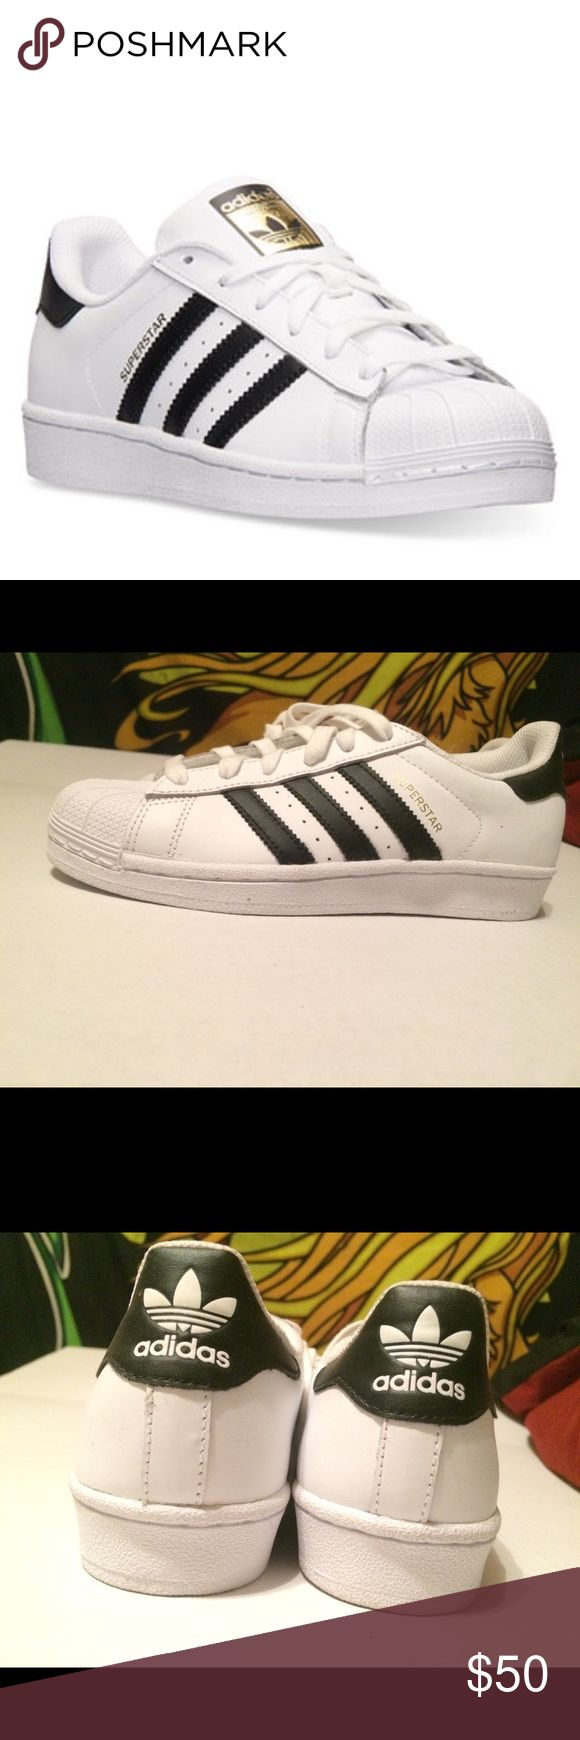 Adidas Superstar White Casual Sneakers/Women Brand new, gold adidas logo on top of shoes :) adidas Shoes Sneakers